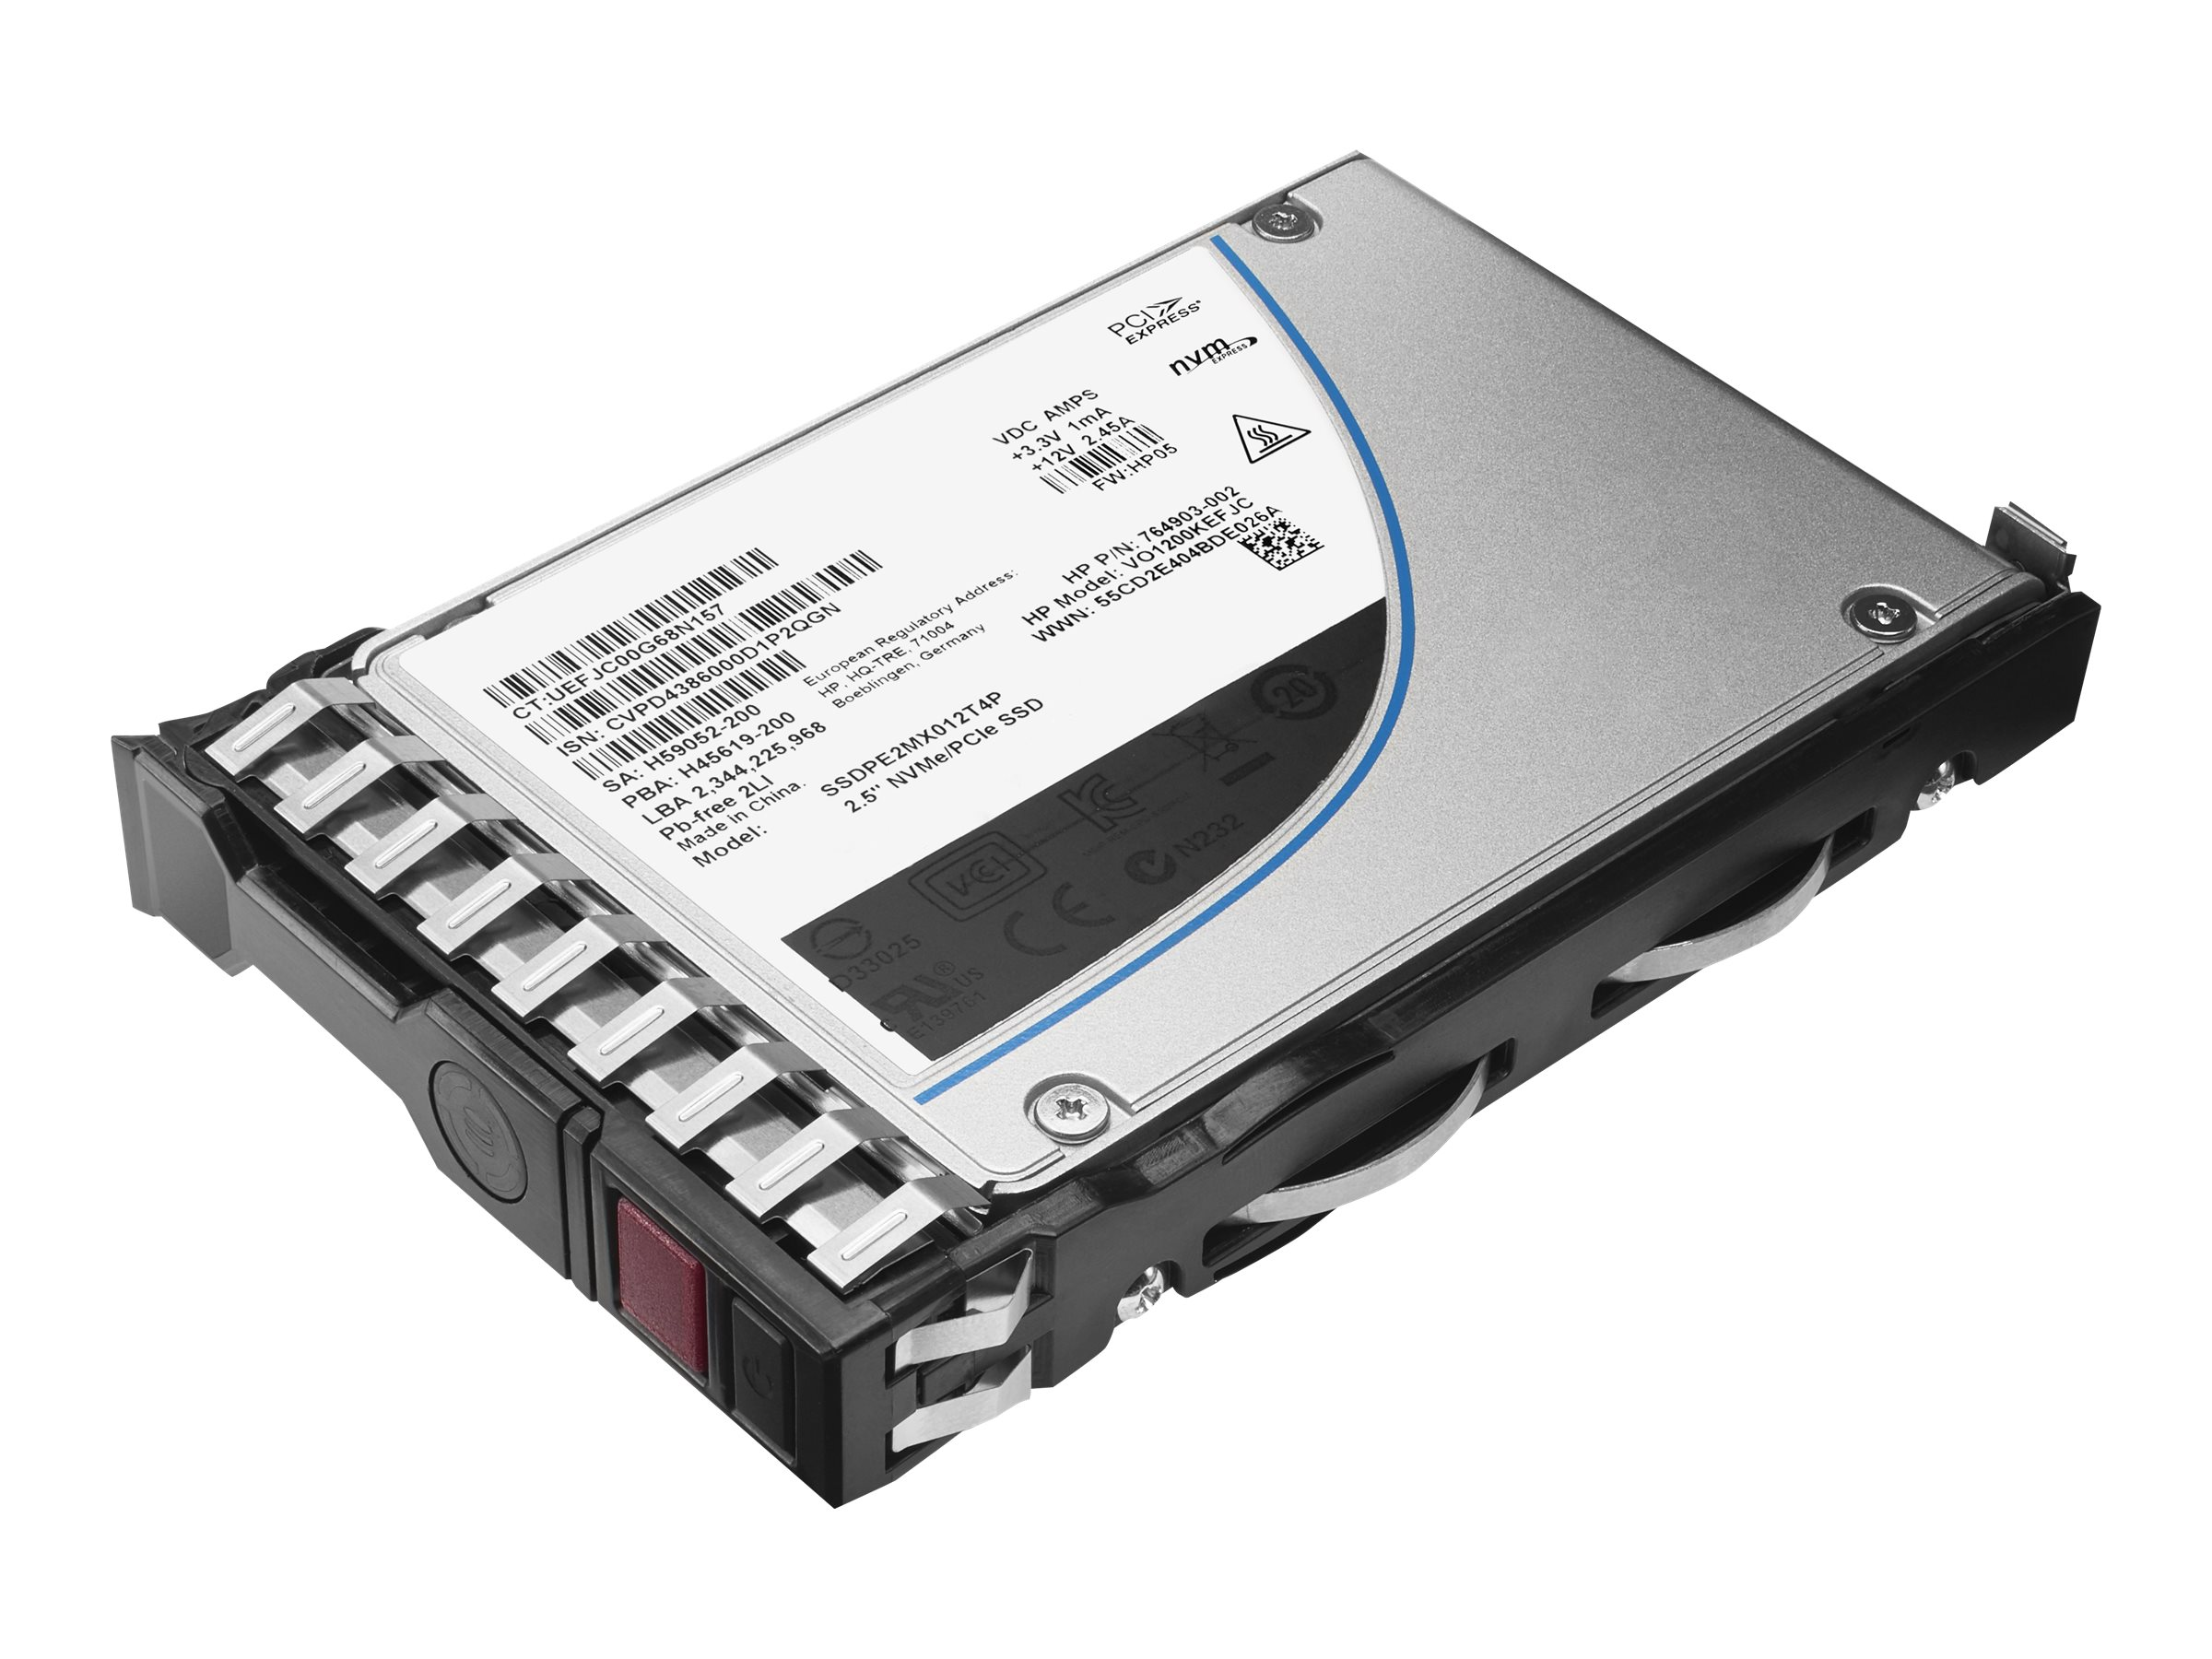 HPE 1.92TB SAS 12Gb s Read Intensive SFF 2.5 Internal Solid State Drive